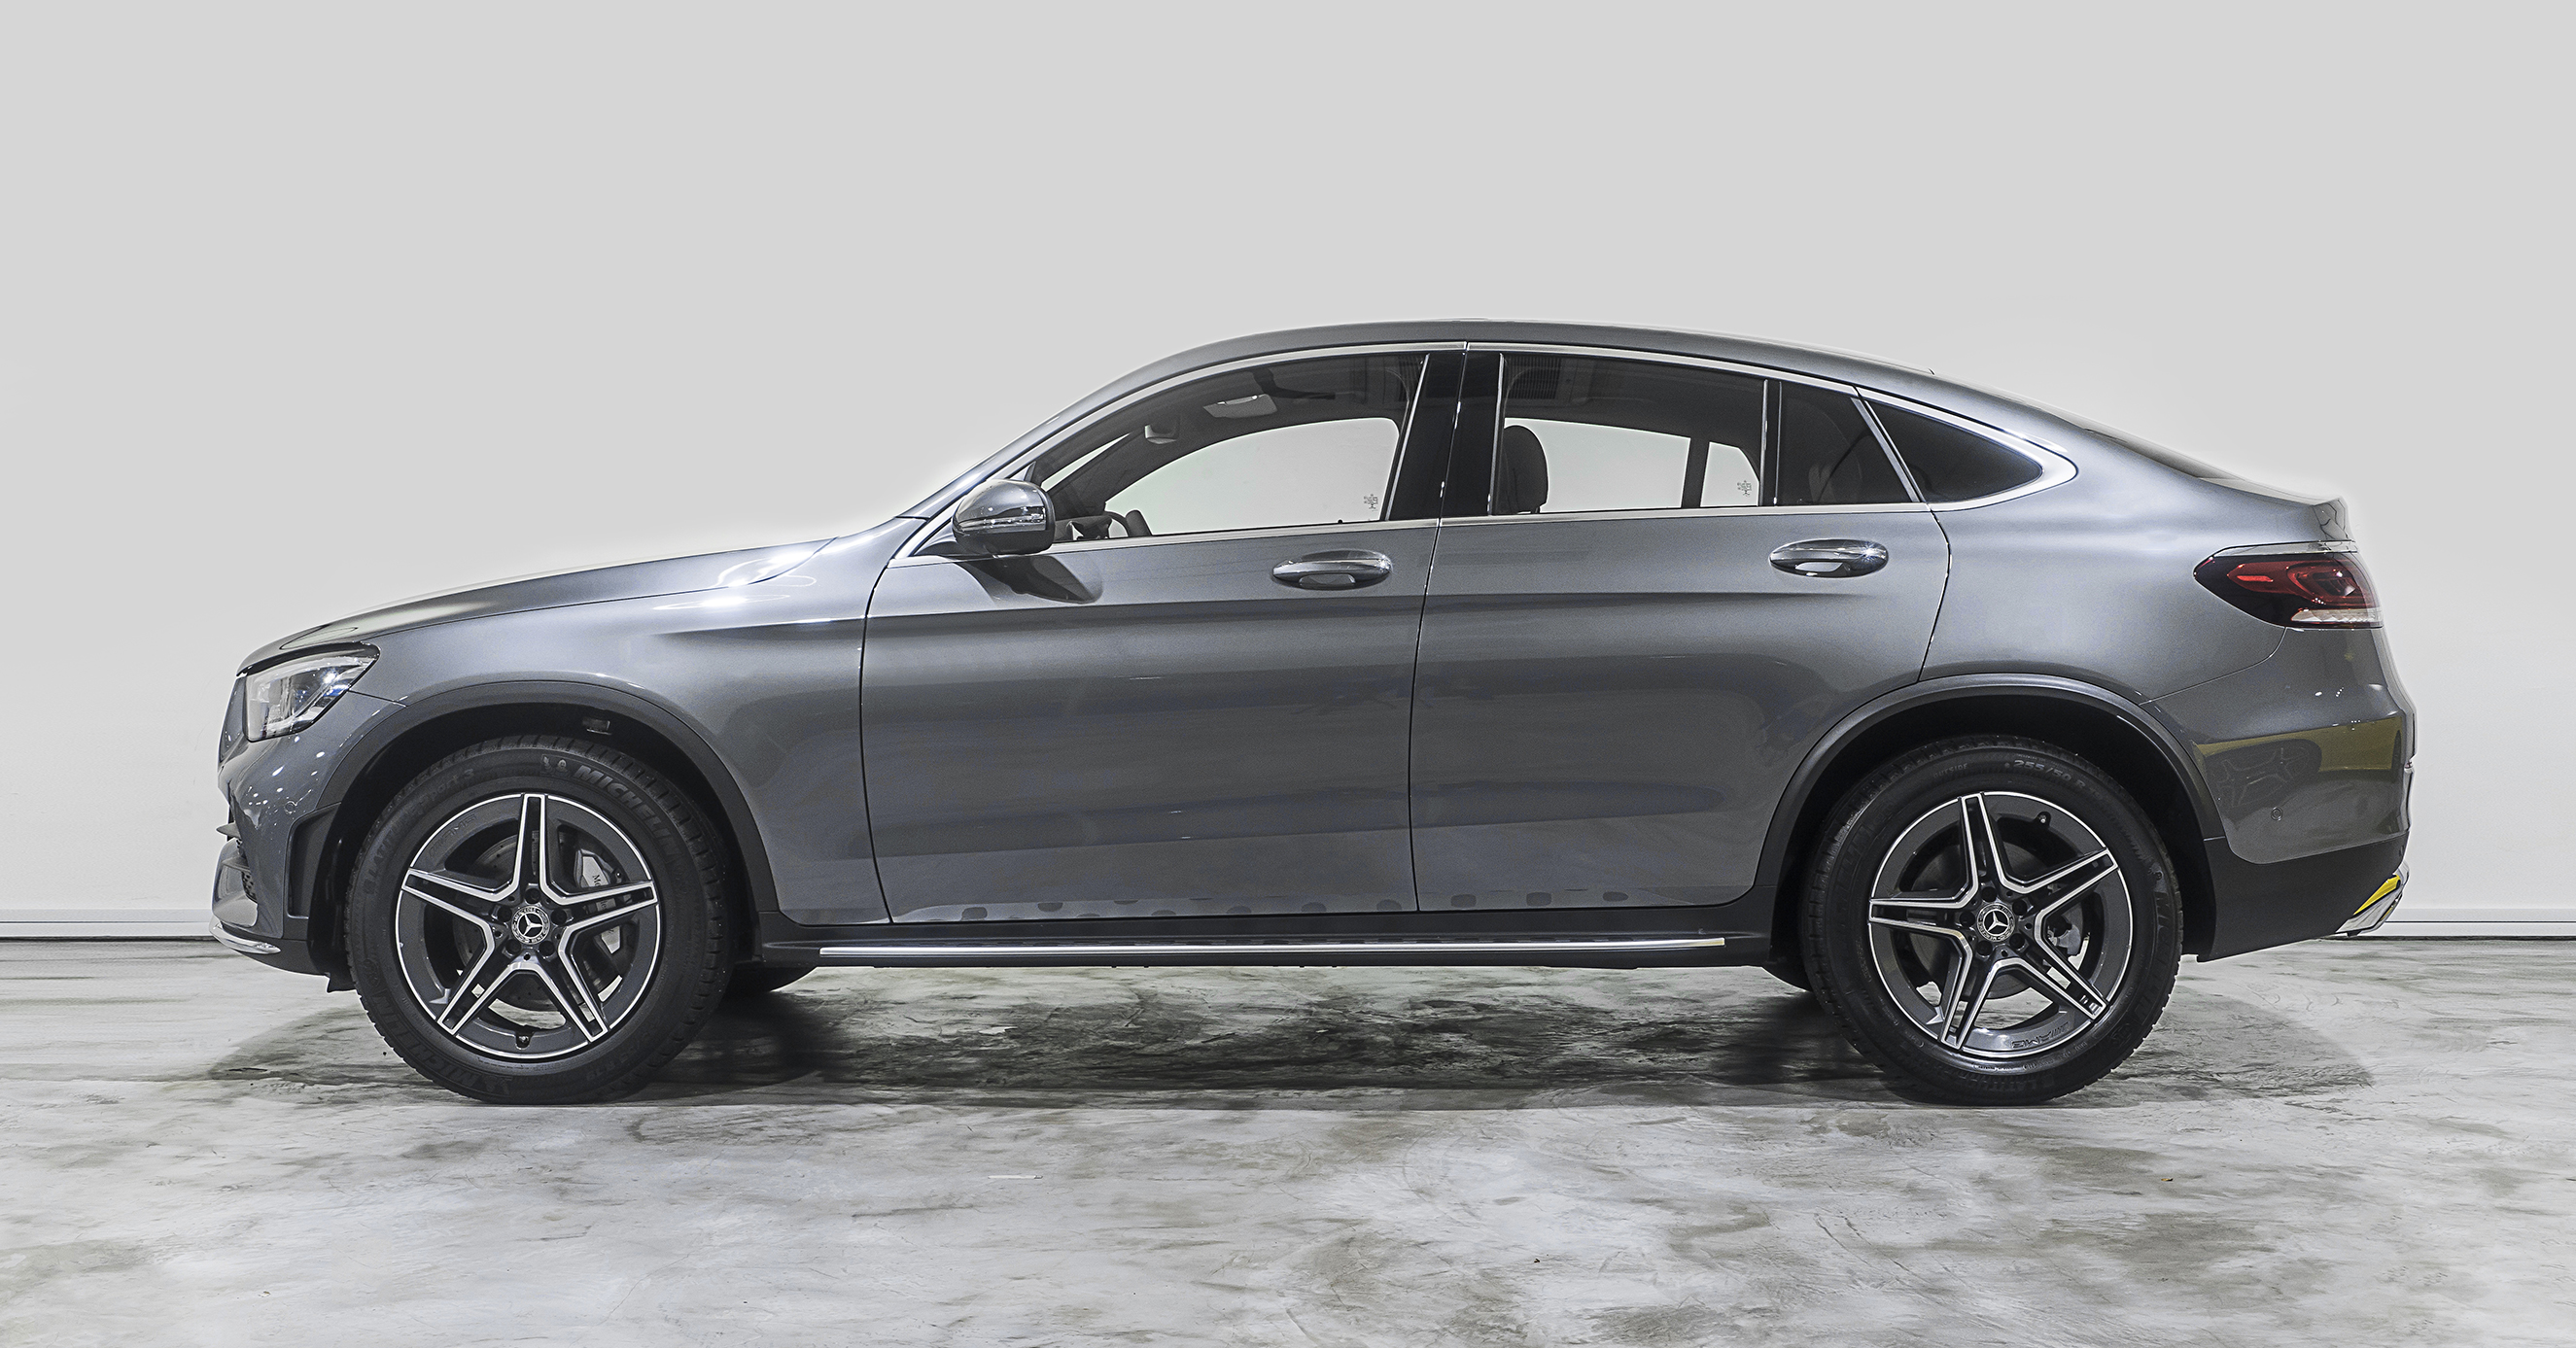 "You don't count doors to define a Mercedes-Benz coupé. Character is what counts. Agile, strong, and sleek, the GLC Coupé puts the ""stance"" in substance. Fresh styling, from the grille and LED headlamps to its three-dimensional LED taillights, gives it new shine."